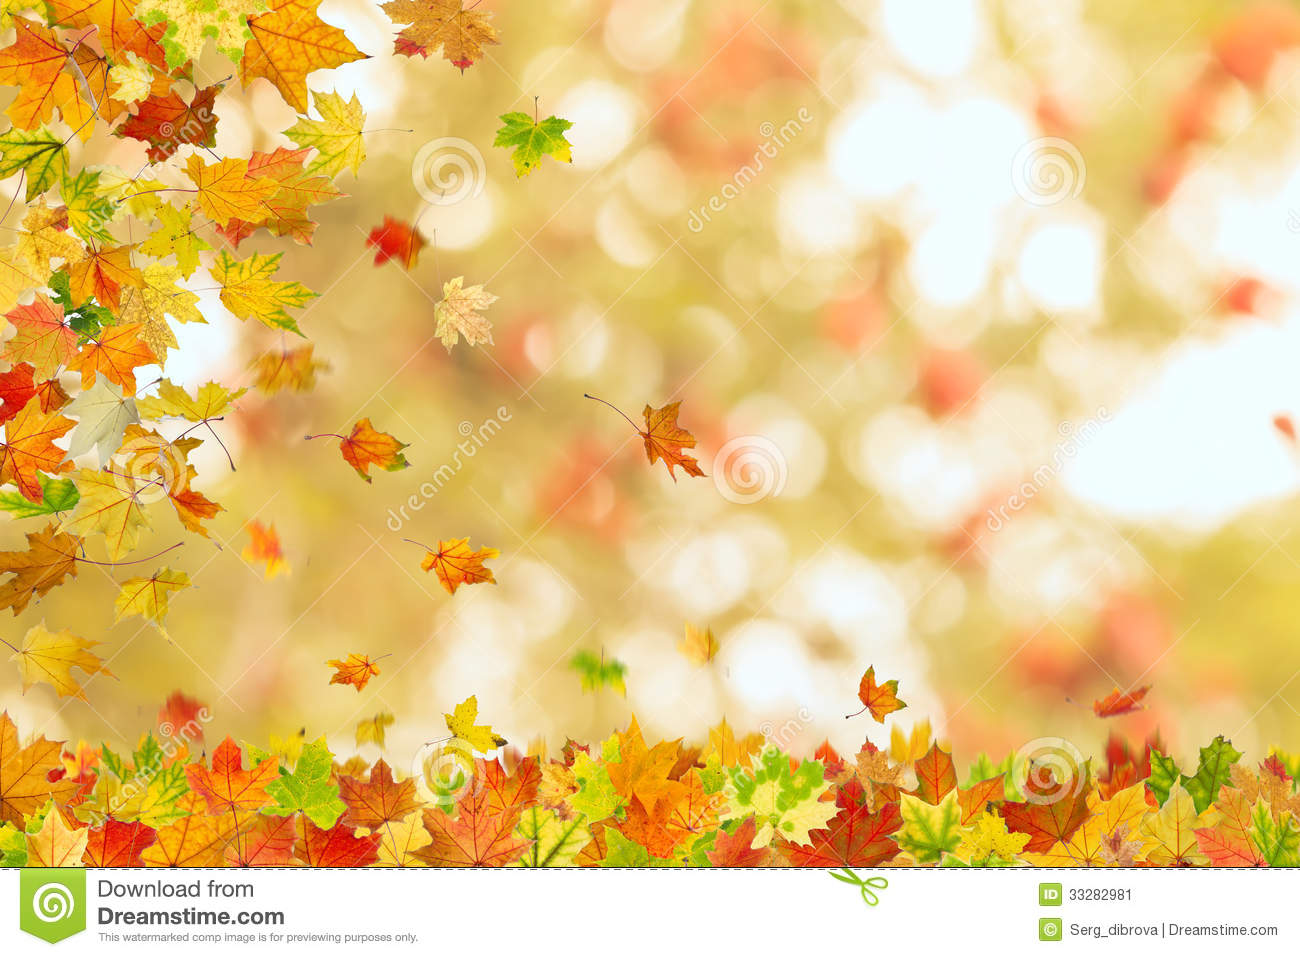 Animated Snow Falling Wallpaper Free Download Autumn Maple Leaves Falling Stock Image Image 33282981